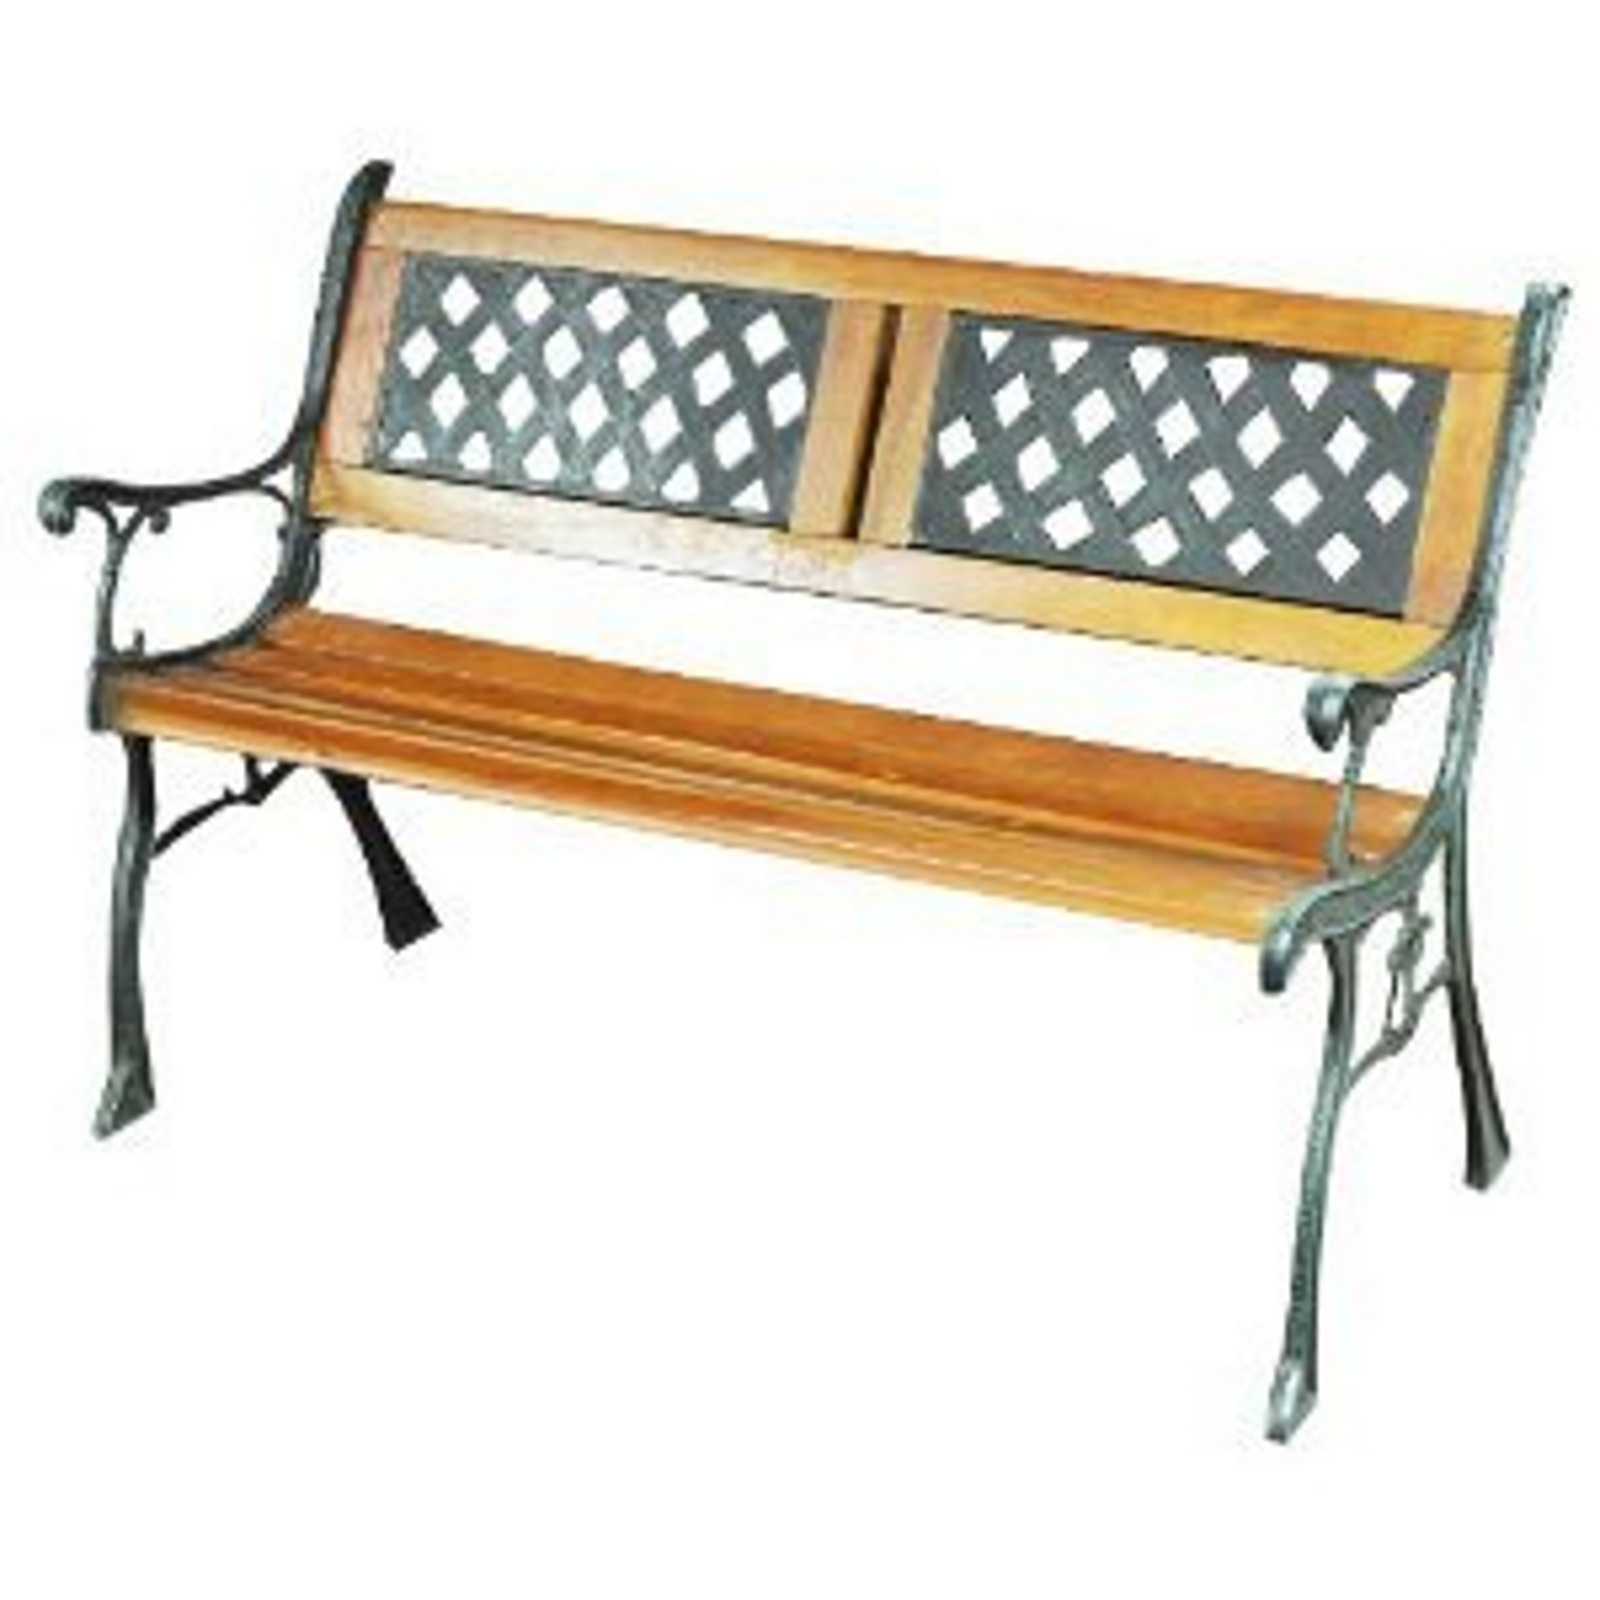 Kingfisher garden bench traditional wooden decorative cast iron 2 seater ebay Decorative benches